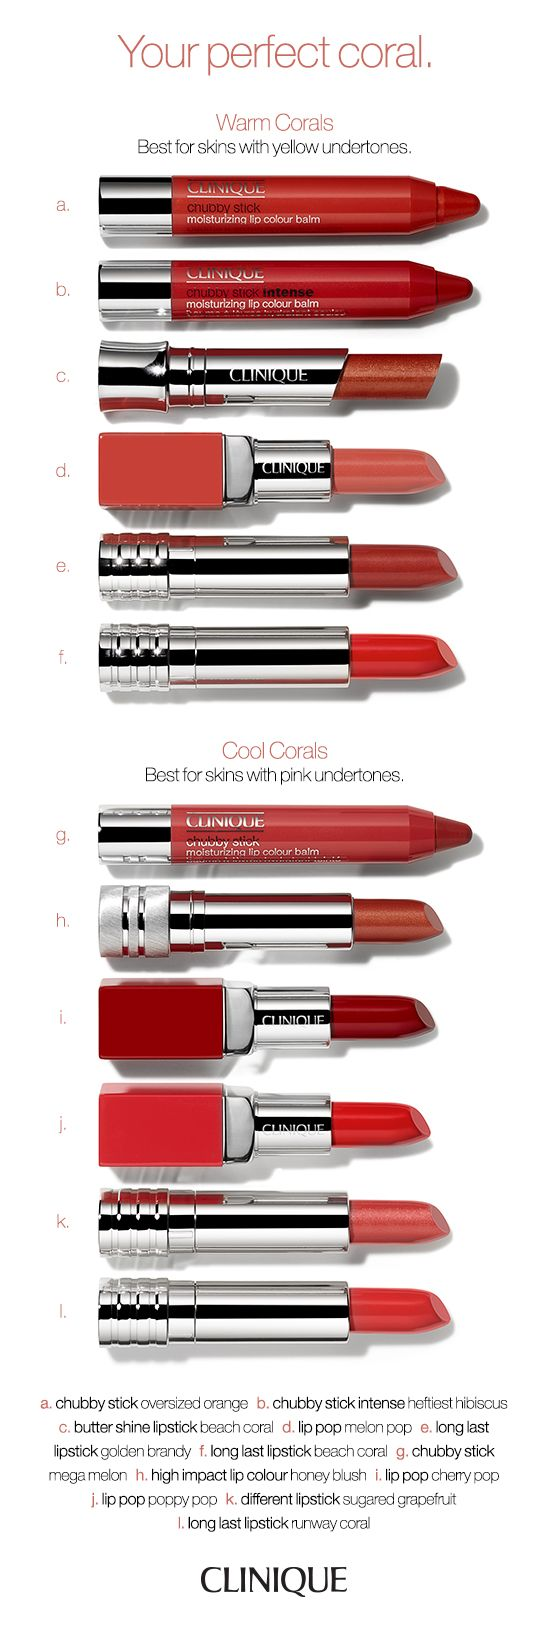 Find the perfect coral lipstick shade for you. Warm corals are best for skins with yellow undertones. Cool corals are best for skins with pink undertones.